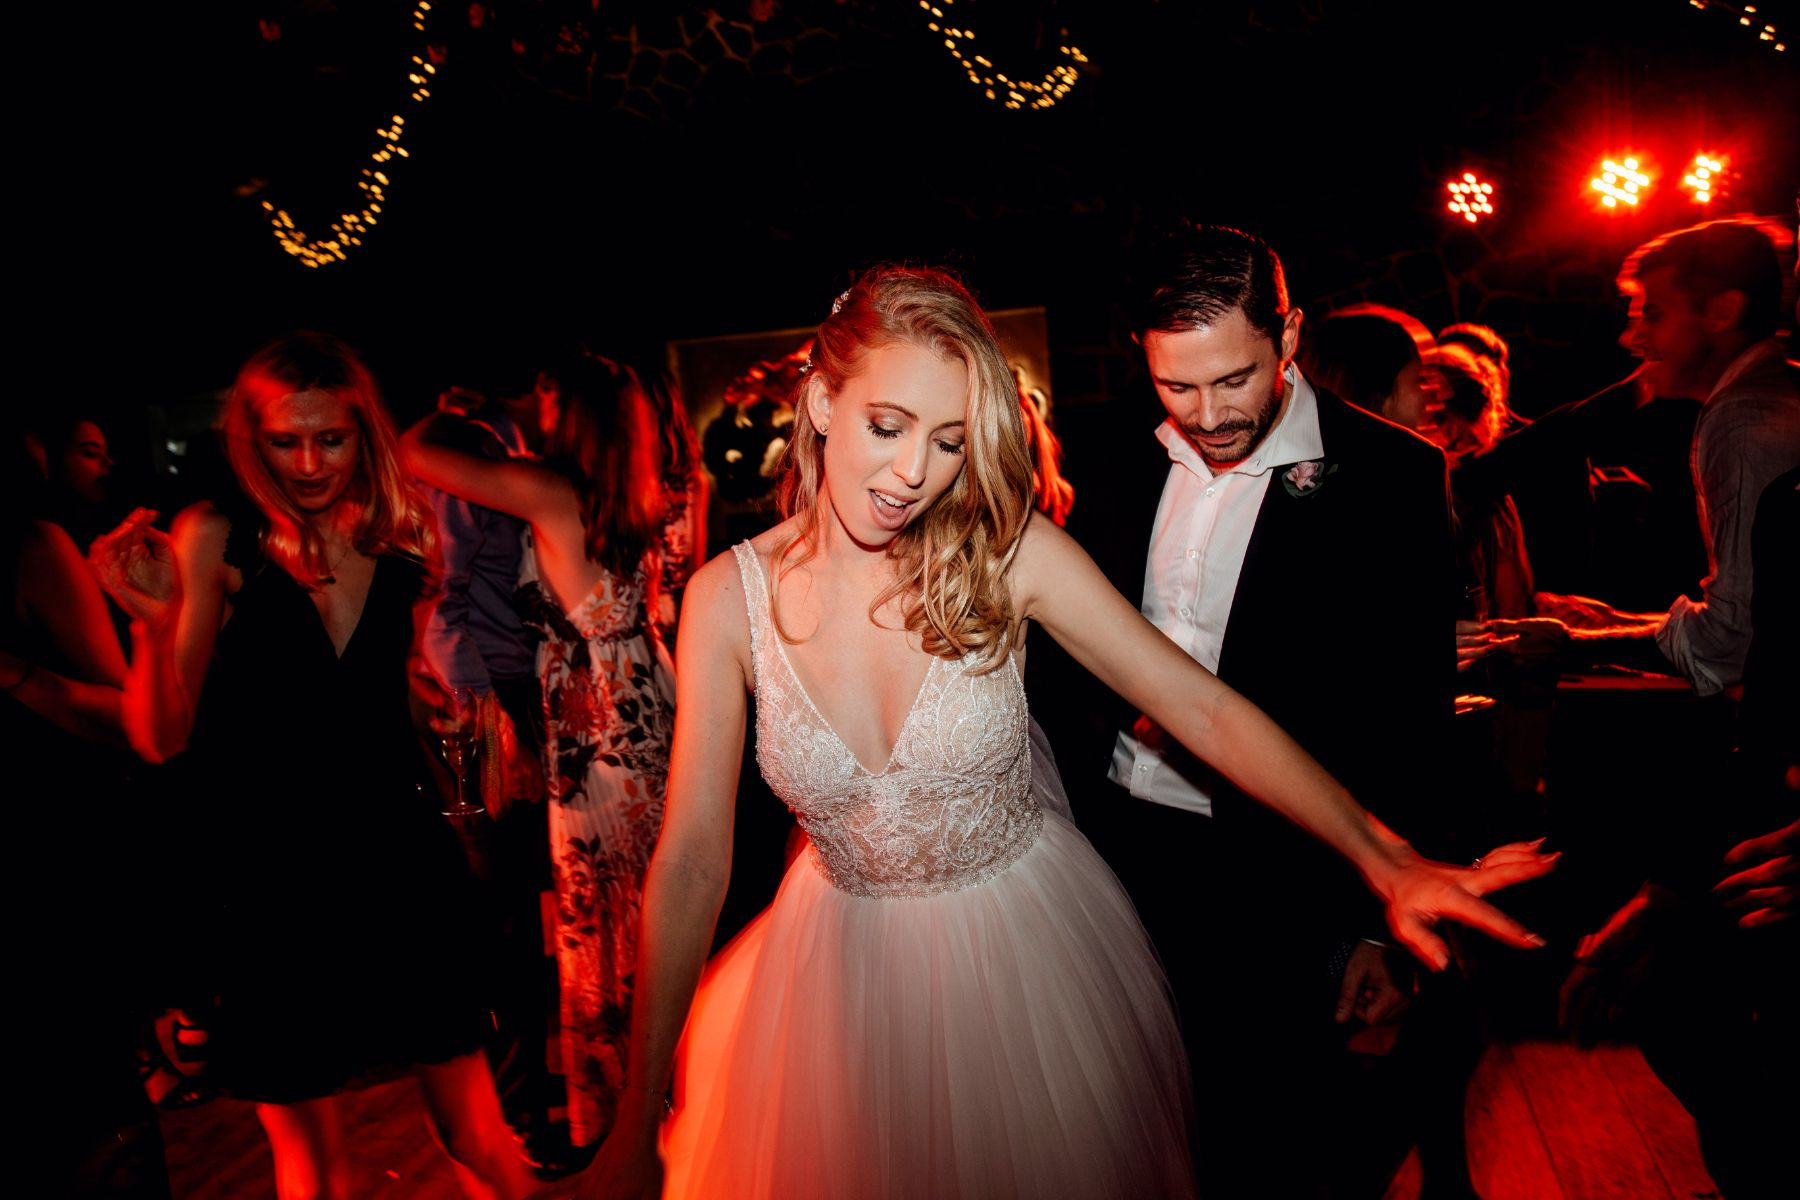 Fearless, modern bride dancing with groom at wedding whilst bathed in red dance floor lighting